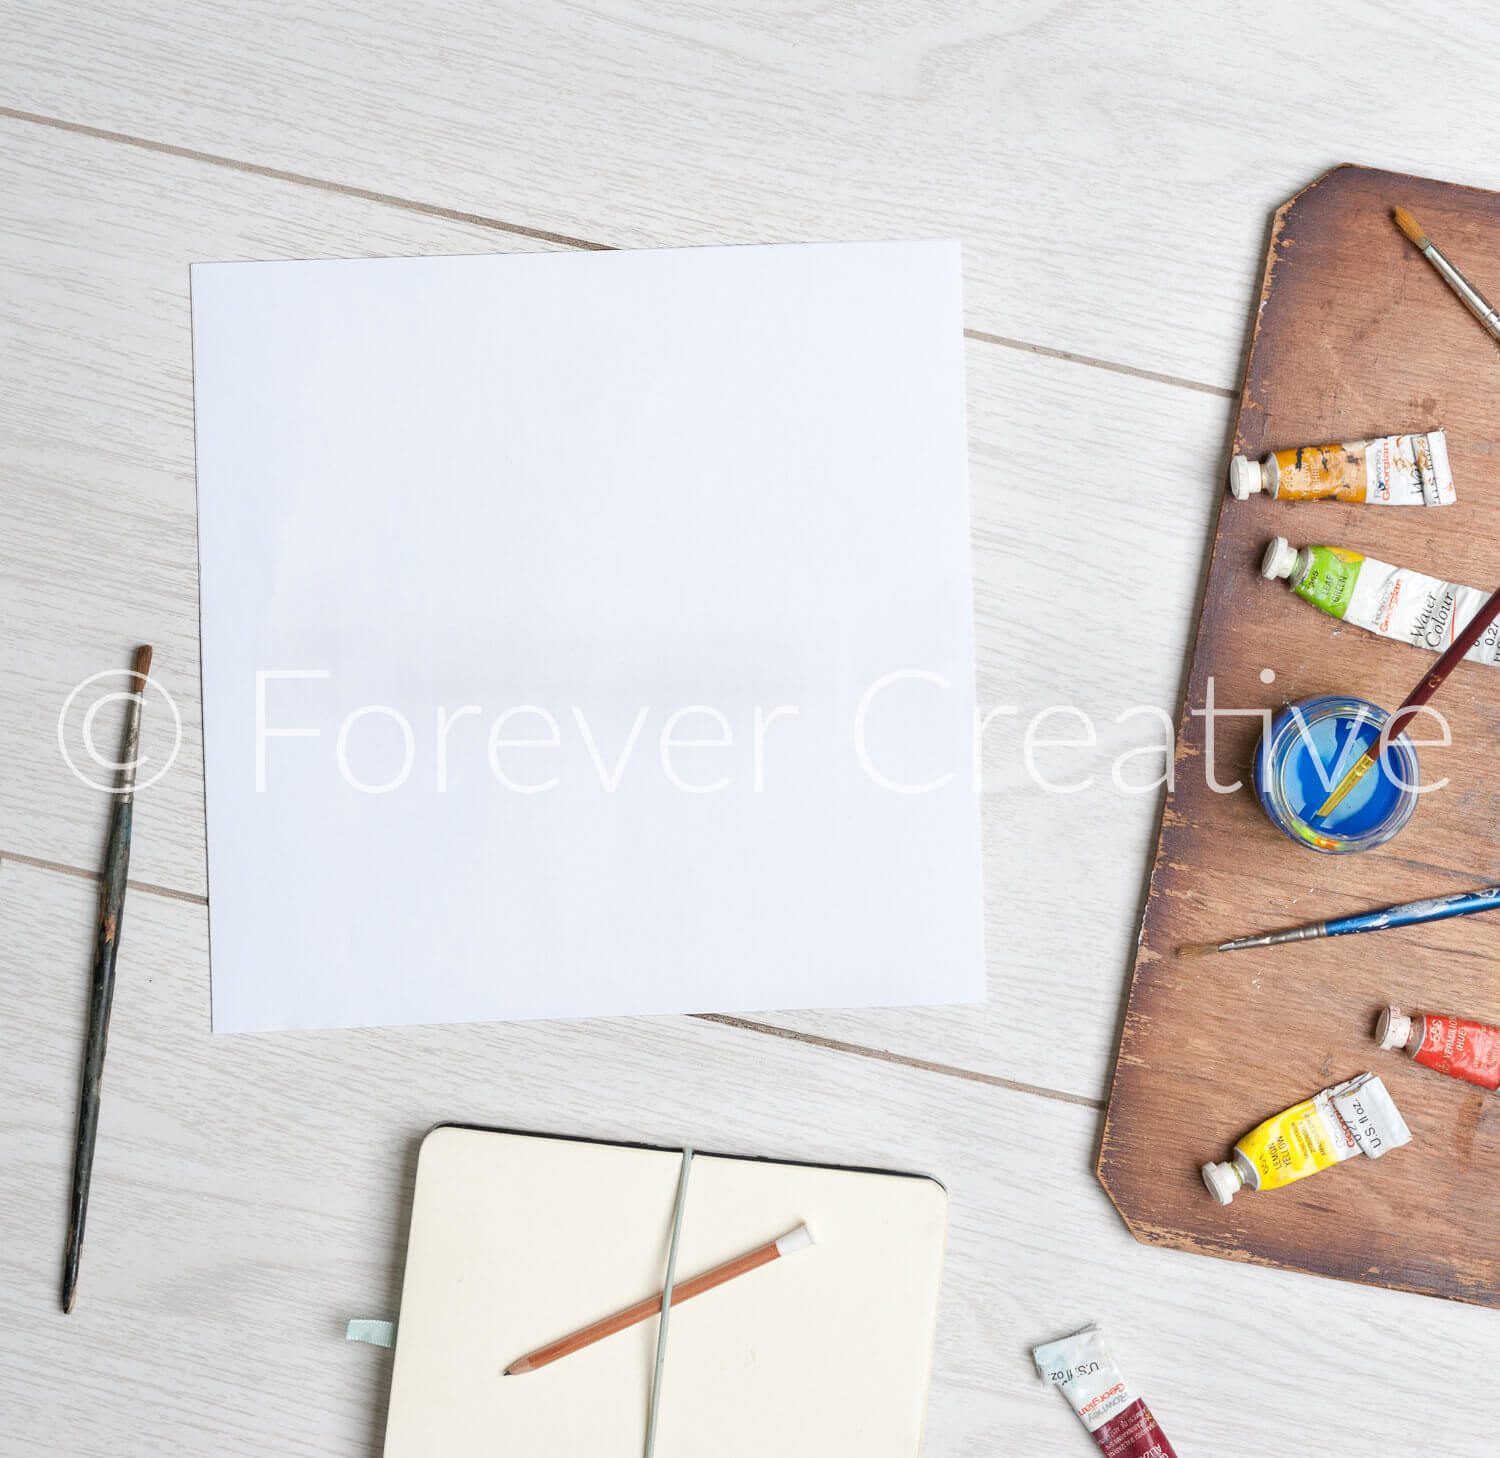 Stock photography ready for artist to superimpose their work with arts based props